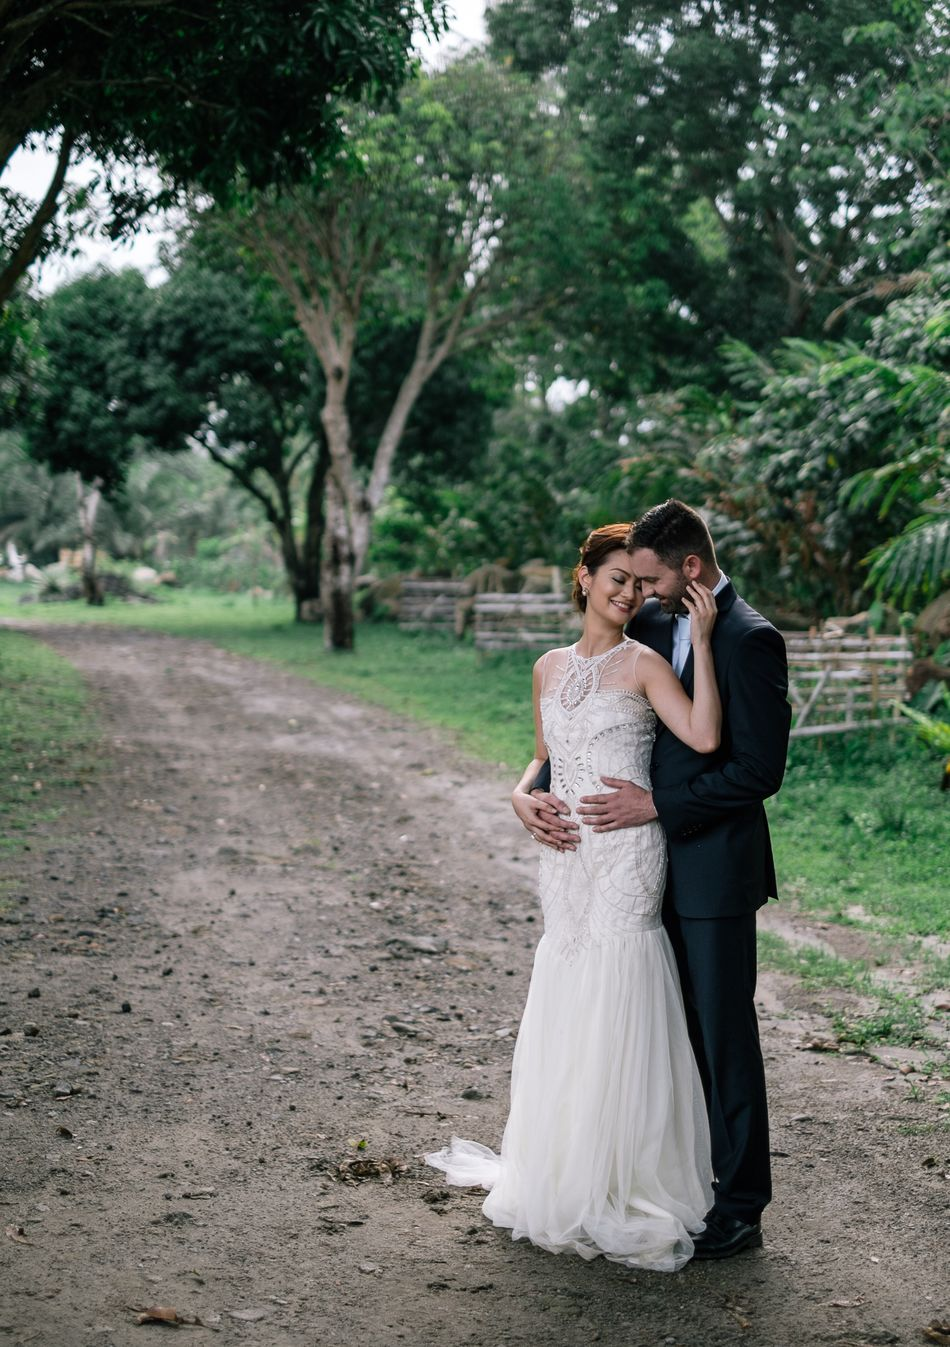 Young Adult Fujifilm_xseries 56mm F1.2 Sydney Photography Romance Wedding Love Couples Couples Shoot Couple Photography